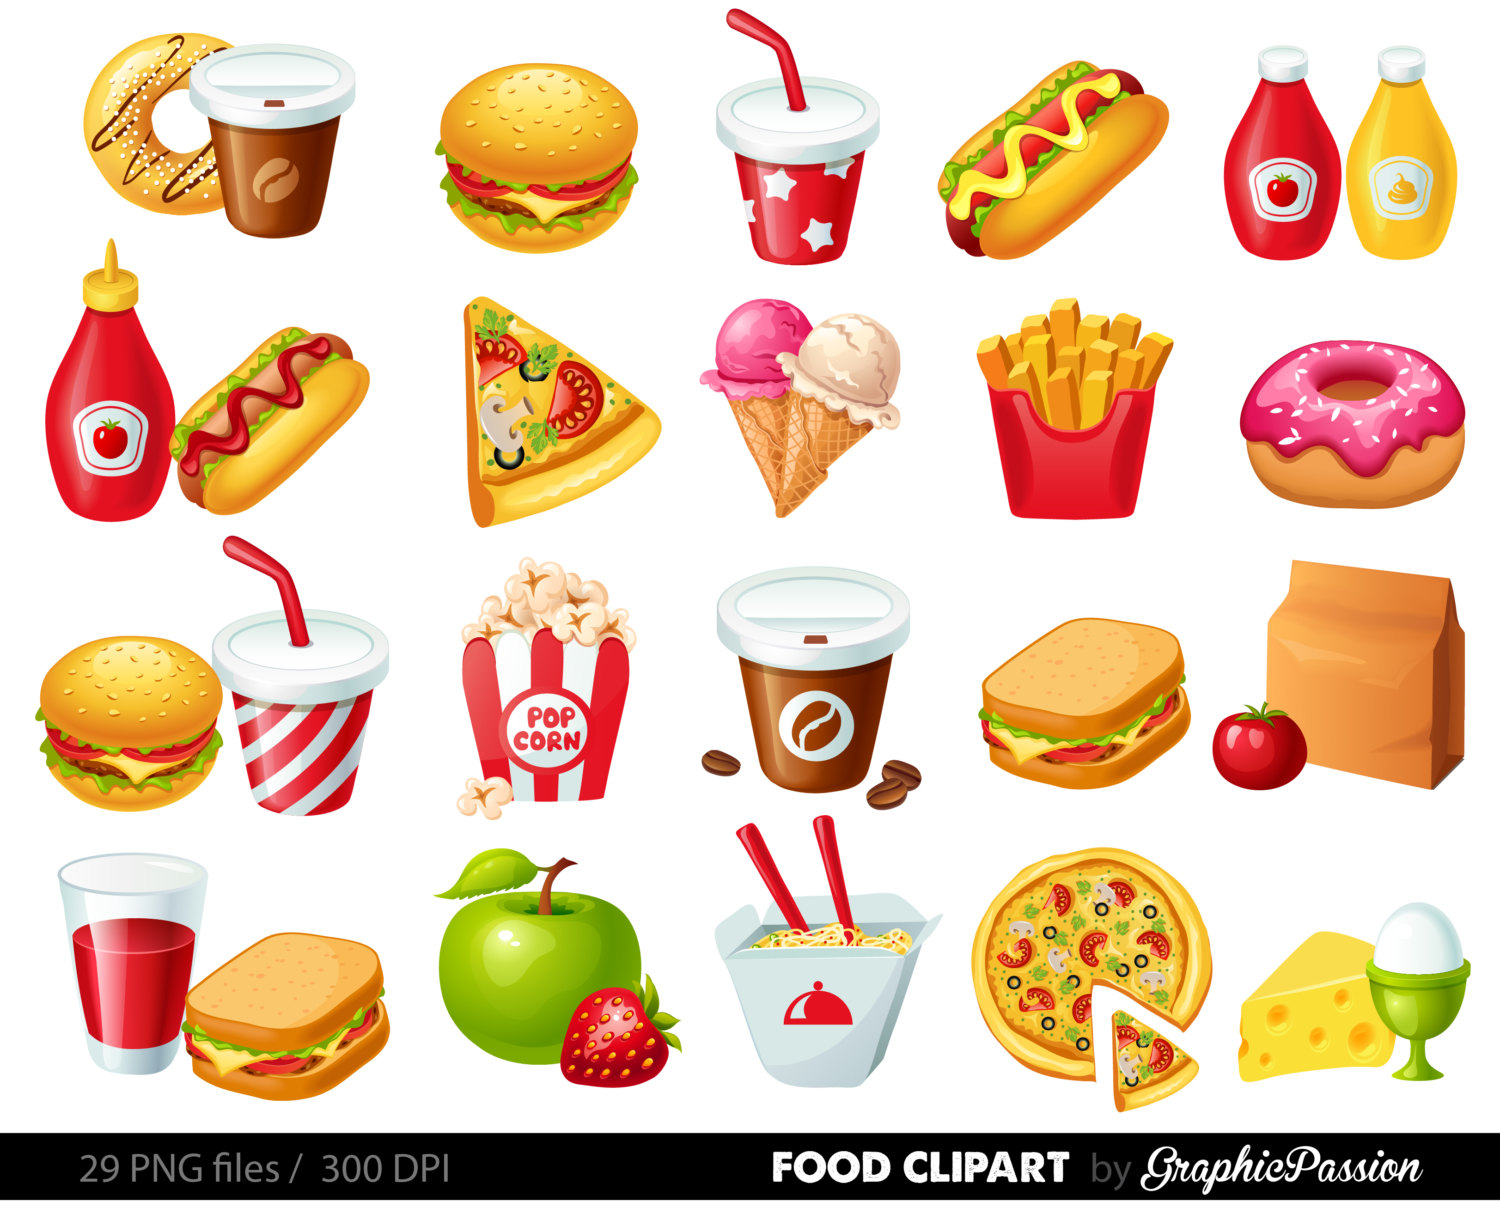 Healthy Food Clipart . food clipart